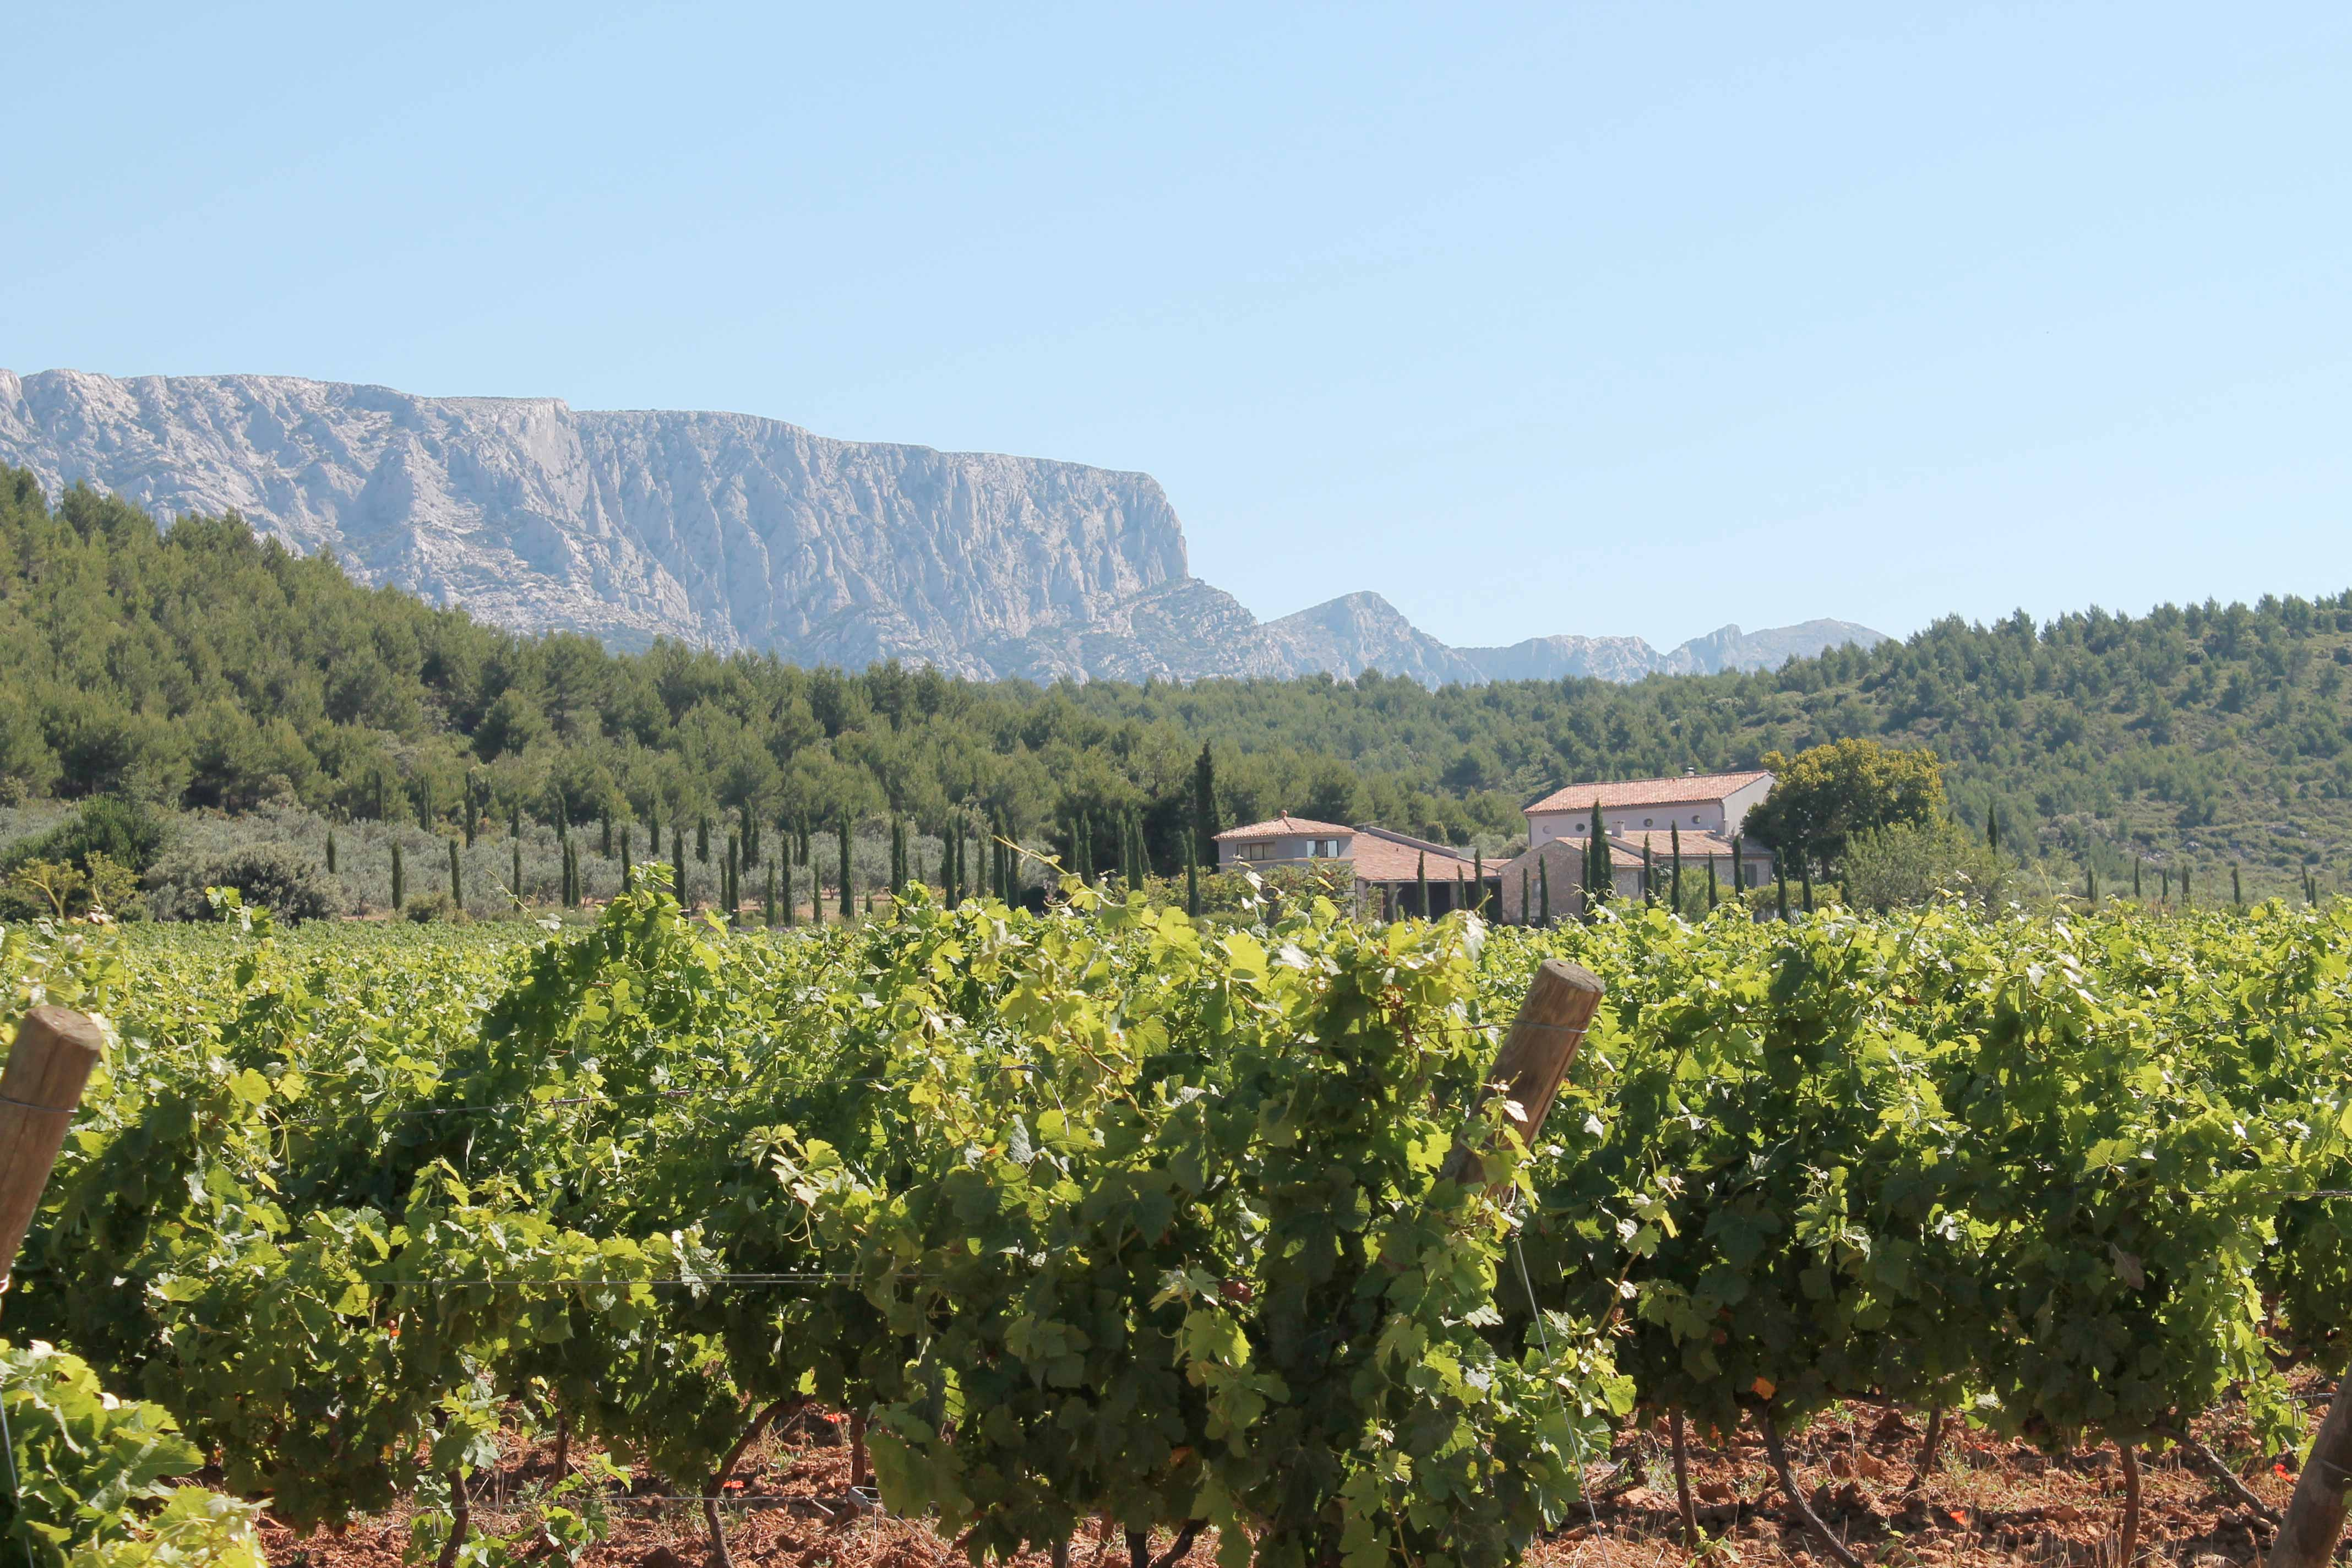 Provence wine tour, vineyard and winery at Sainte Victoire